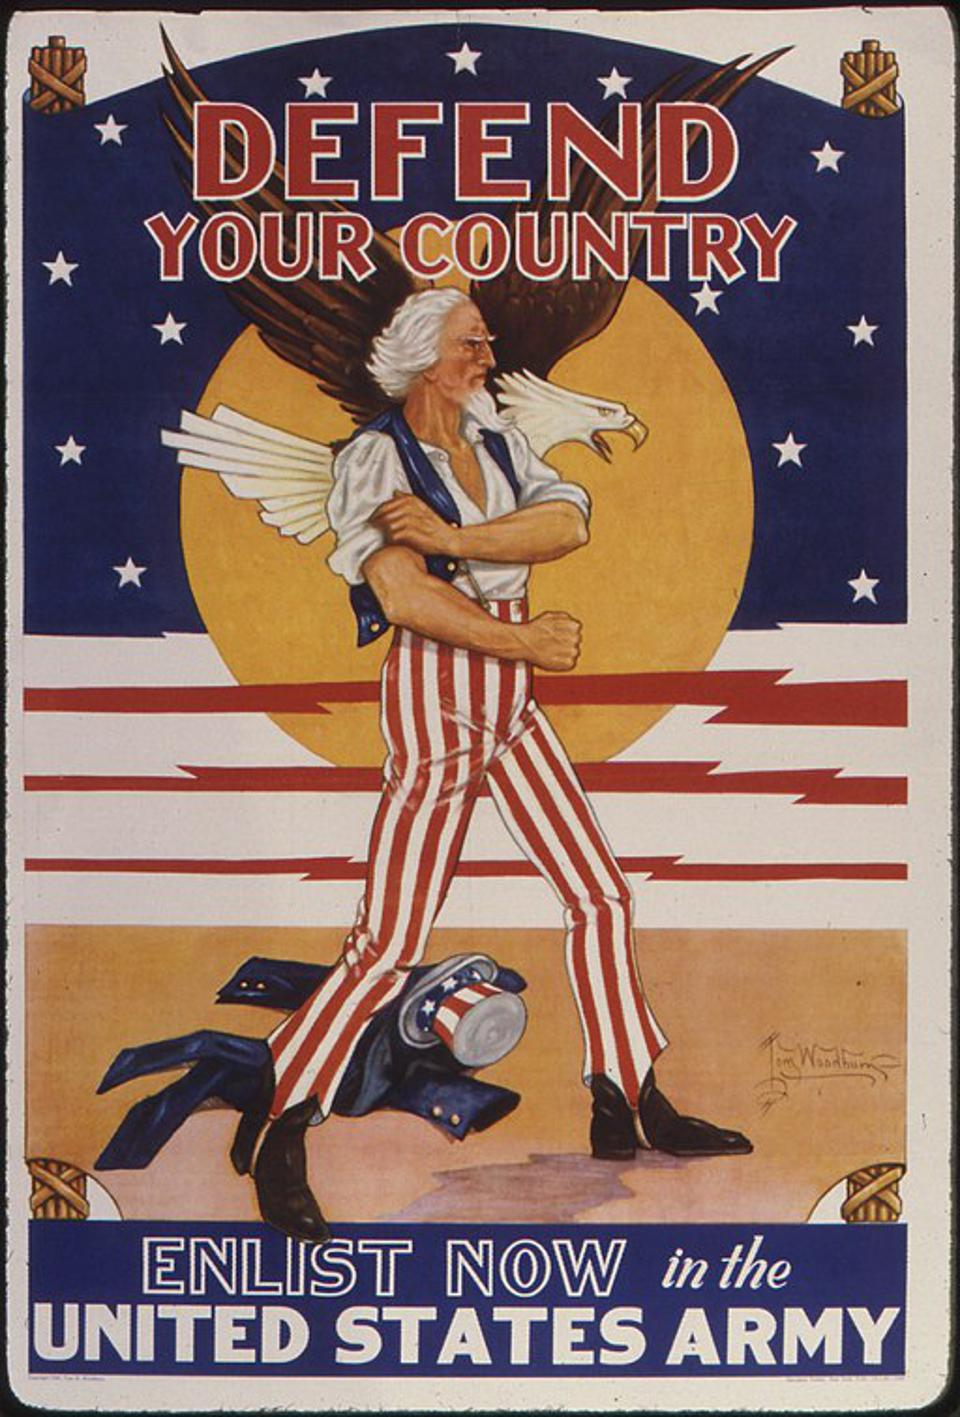 World War II recruitment posters from the United StatesUnited States ArmyUncle Sam in propagandaEagles in art